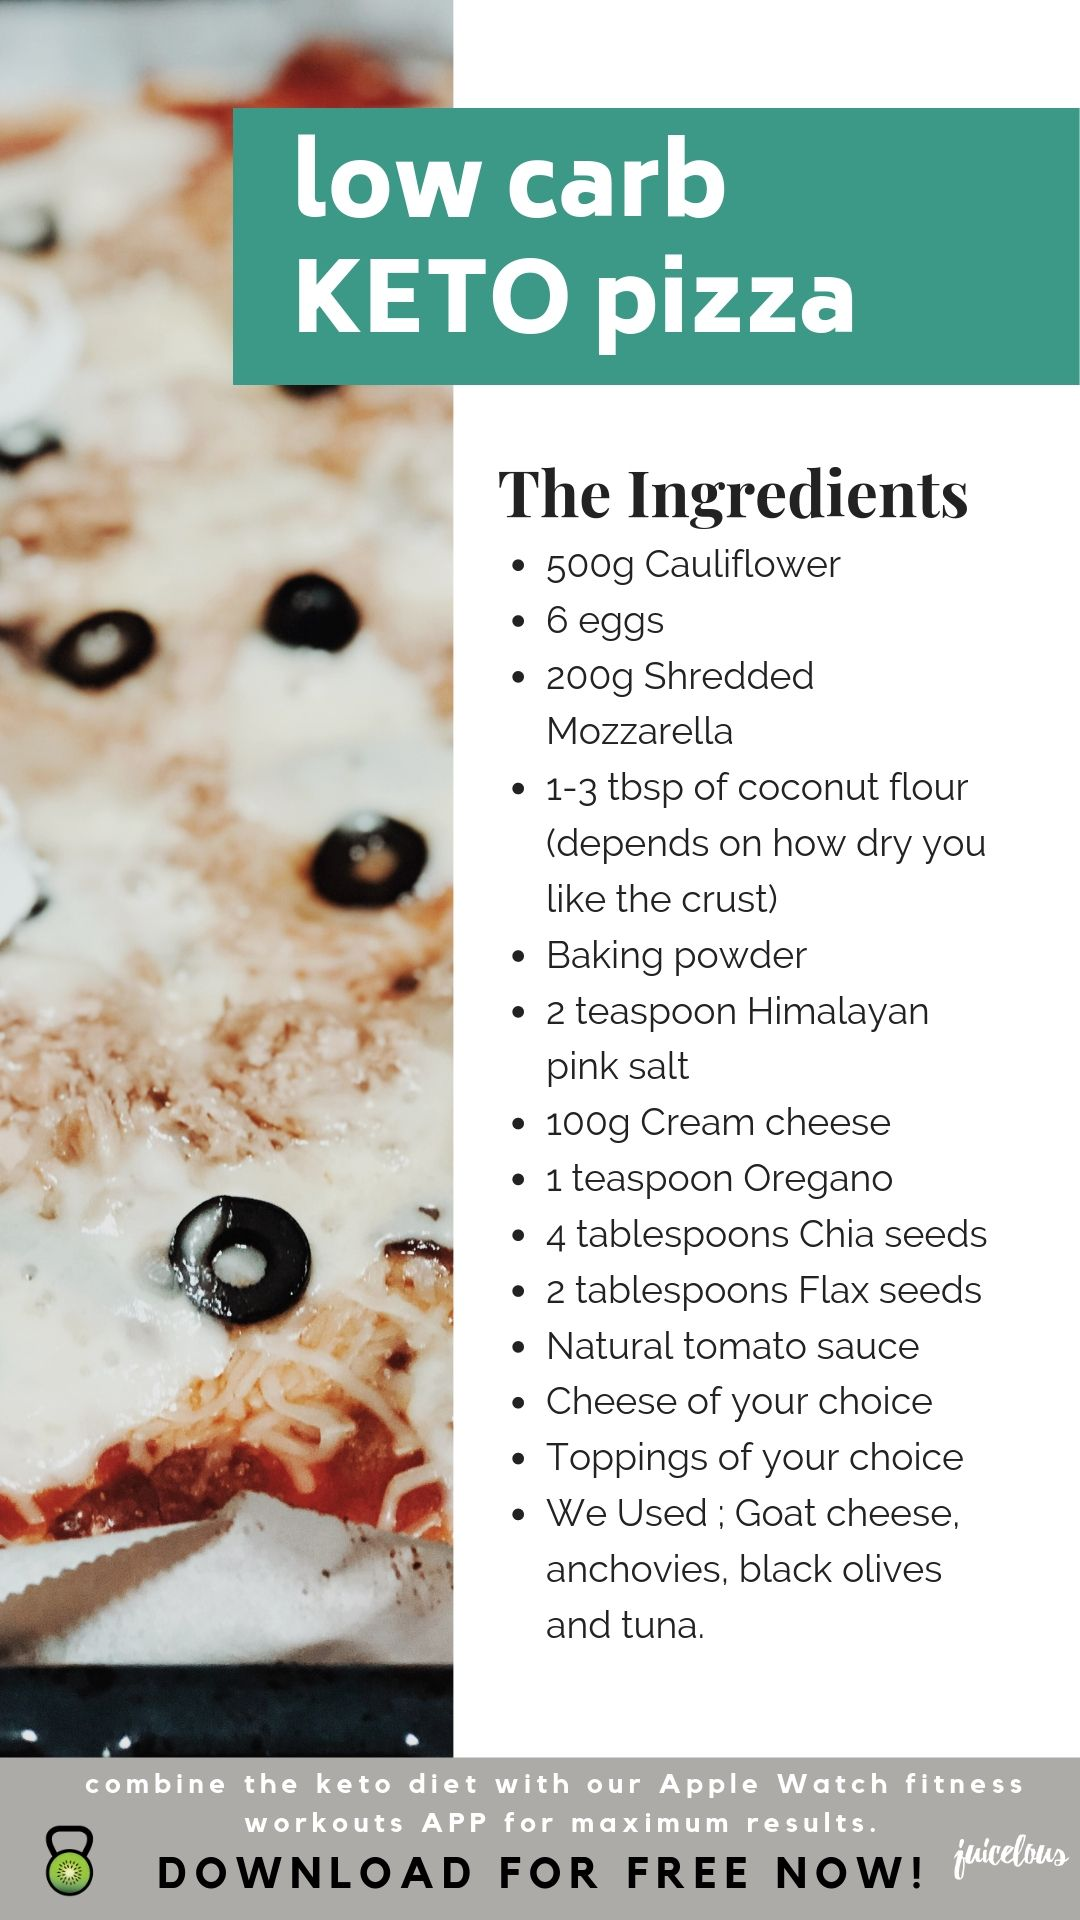 Low Carb Pizza Keto Friendly Bloomlous When Getting Into A